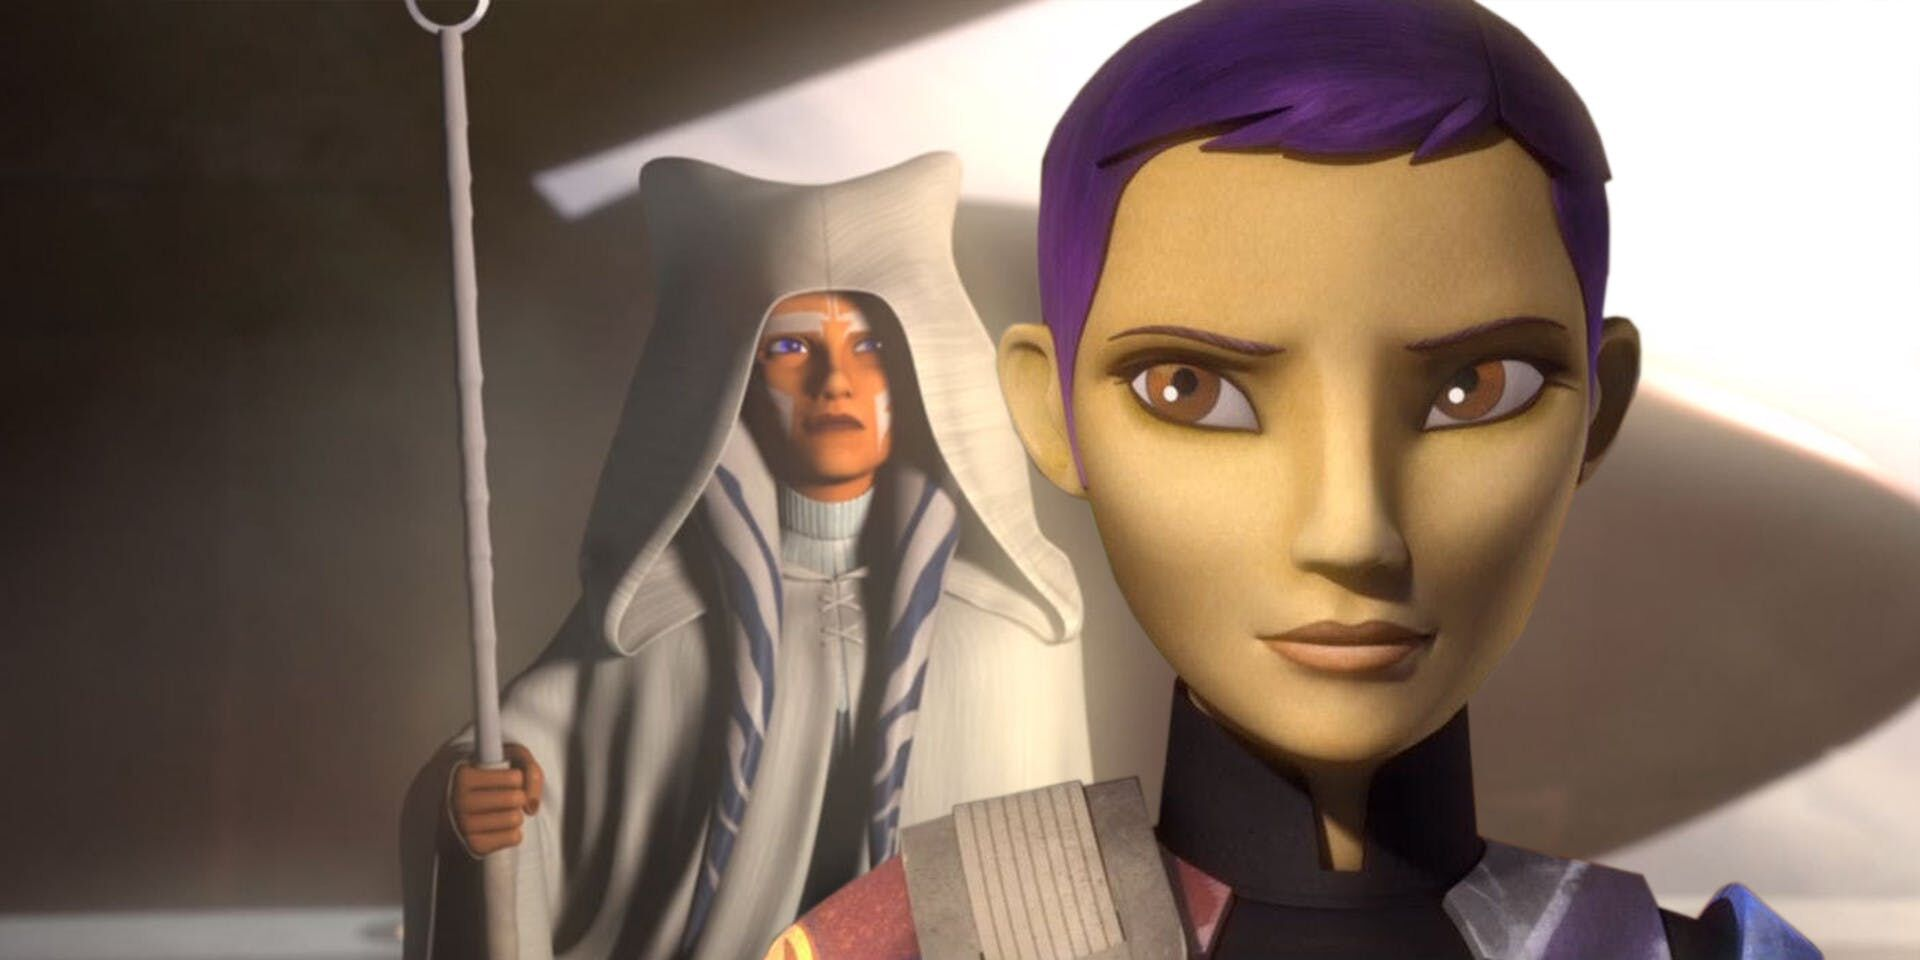 The Mandalorian: 6 Actresses who could play Sabine Wren